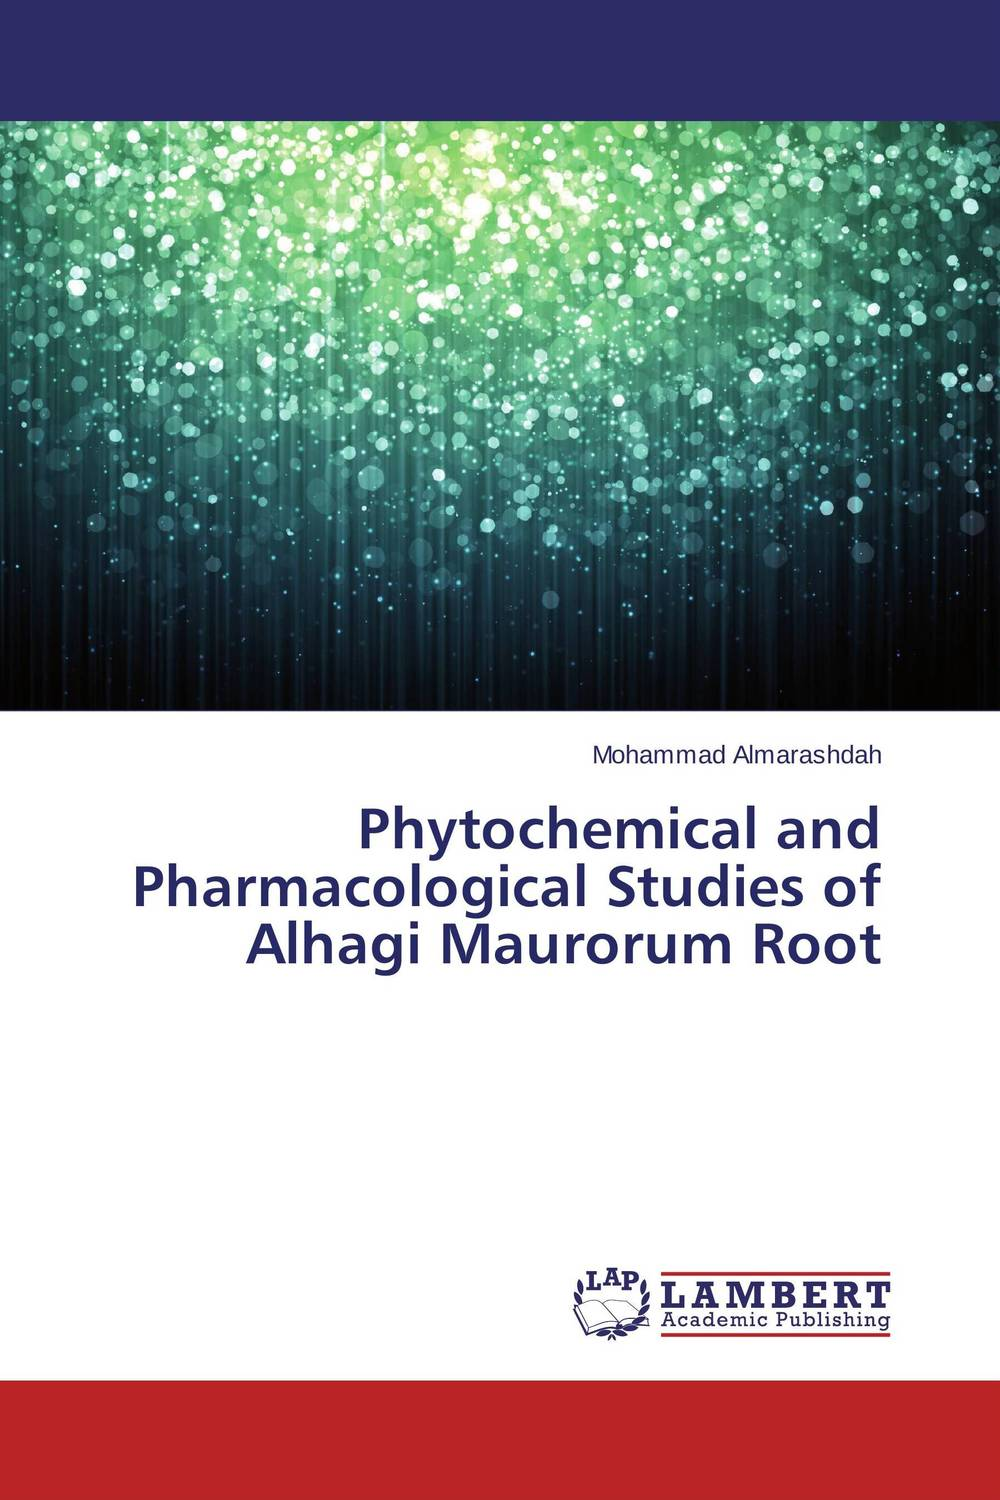 Phytochemical and Pharmacological Studies of Alhagi Maurorum Root md rabiul islam s m ibrahim sumon and farhana lipi phytochemical evaluation of leaves of cymbopogan citratus